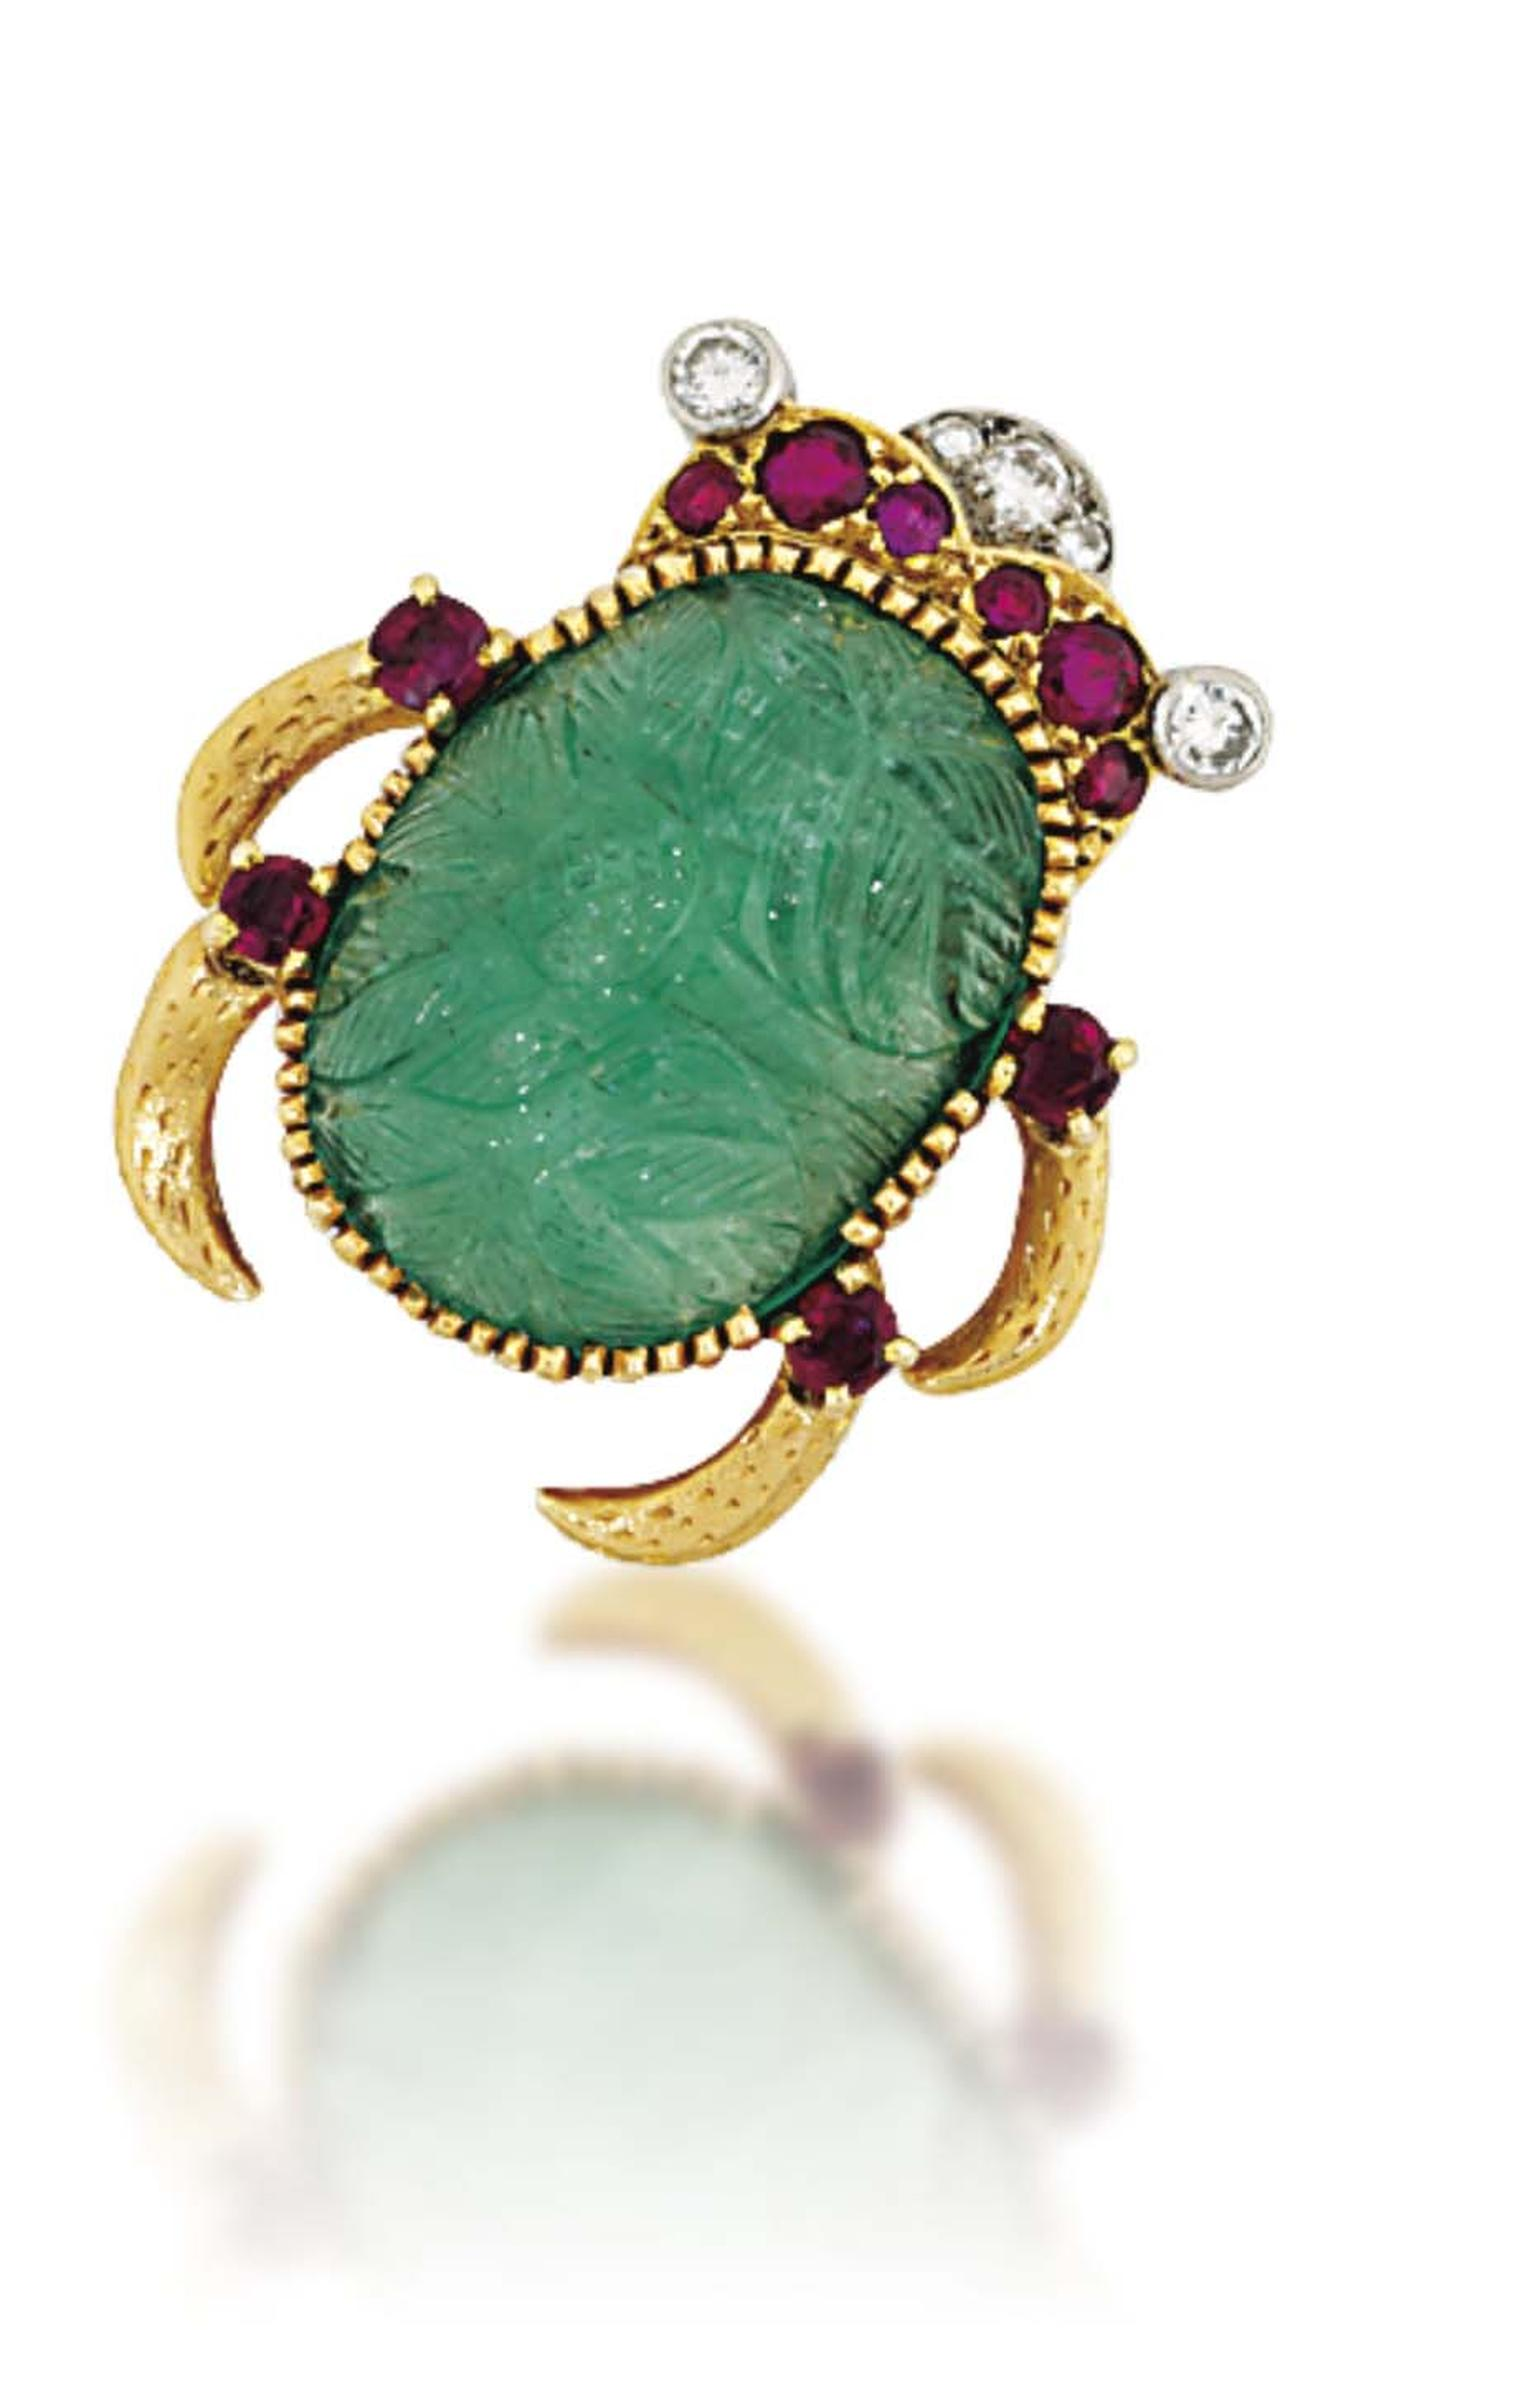 Lot 220 is an emerald, ruby and diamond Scarab brooch signed by Cartier (estimate: £8,000-12,000). Christie's Important Jewels Sale on 26 November at King Street in London.